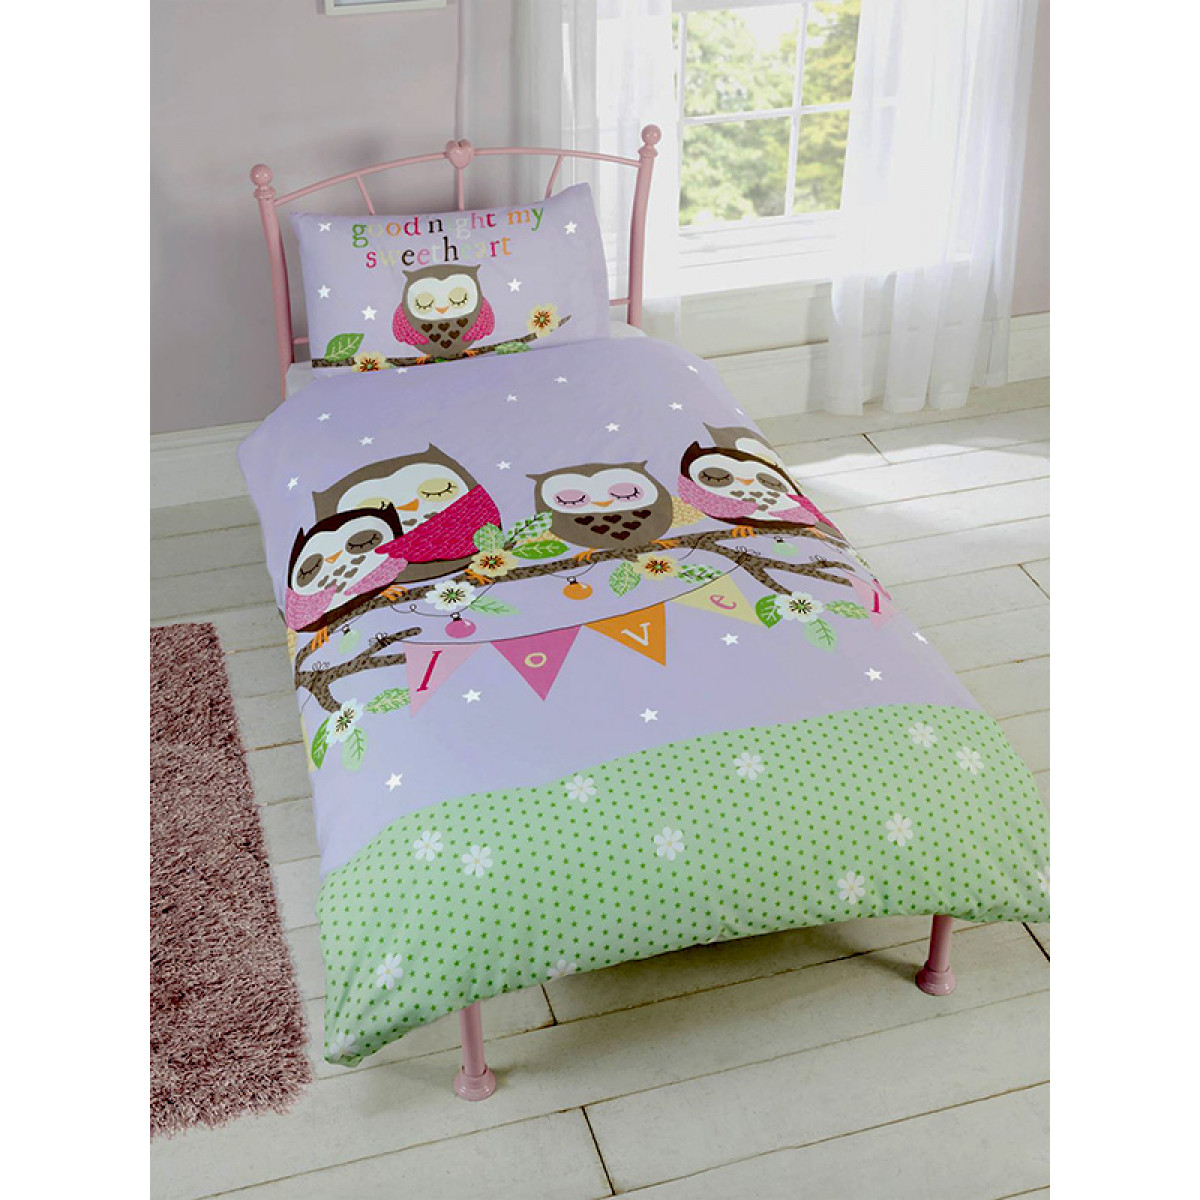 Goodnight sweetheart owls single duvet cover and for Housse couette vache